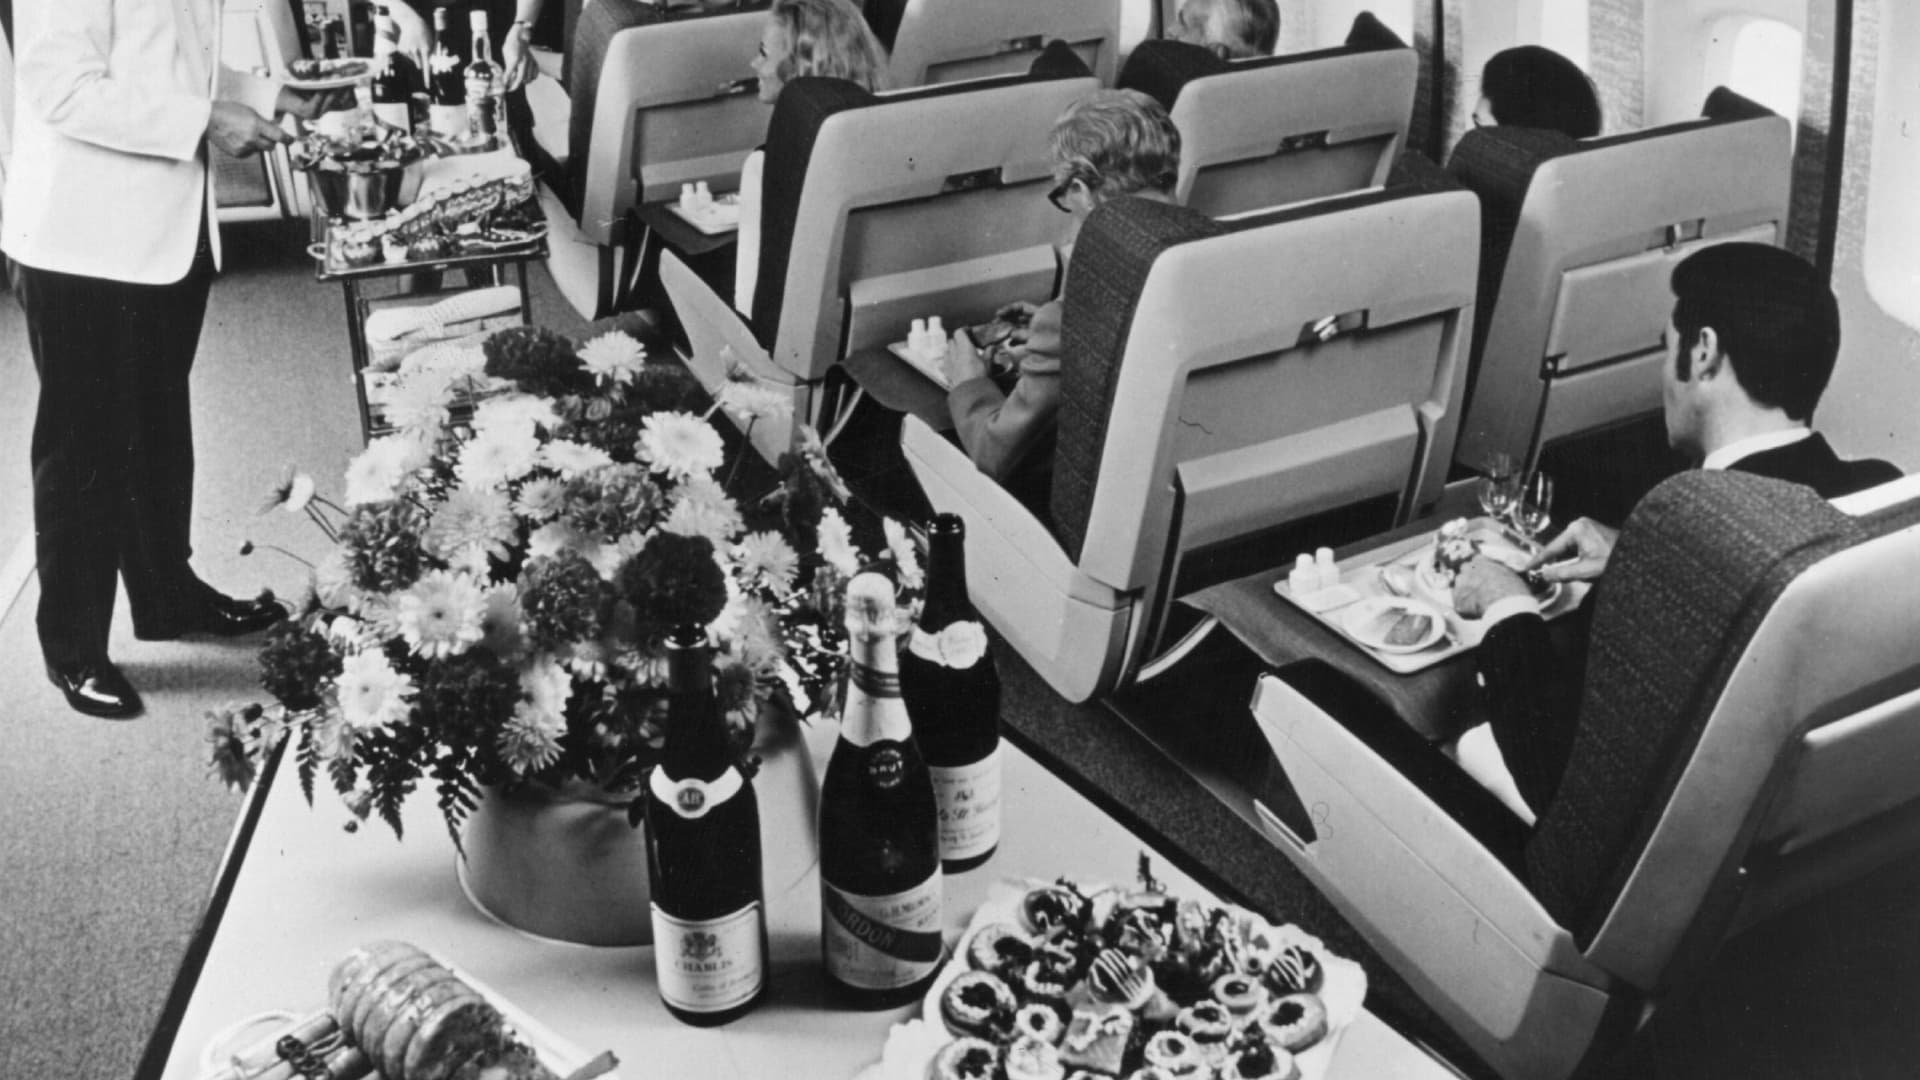 Aisle space in the first-class section of a British Overseas Airways Corporation Boeing 747, circa 1970.